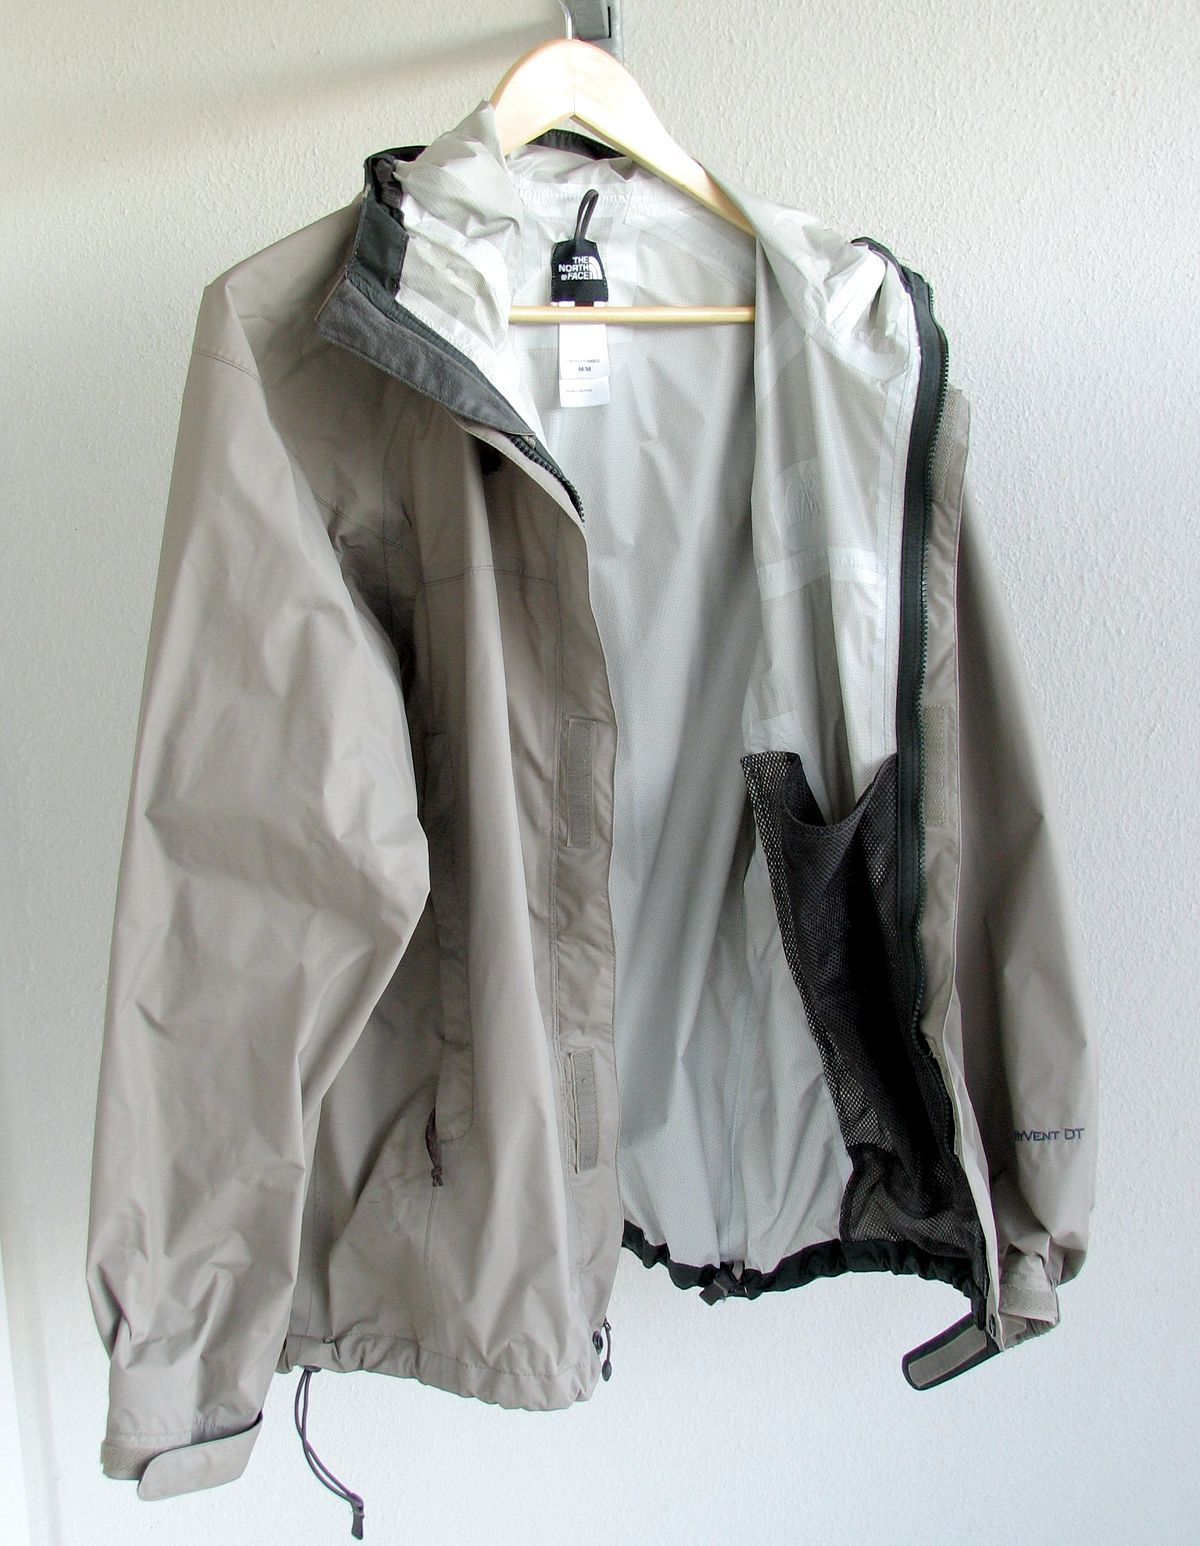 layered clothing  wikipedia